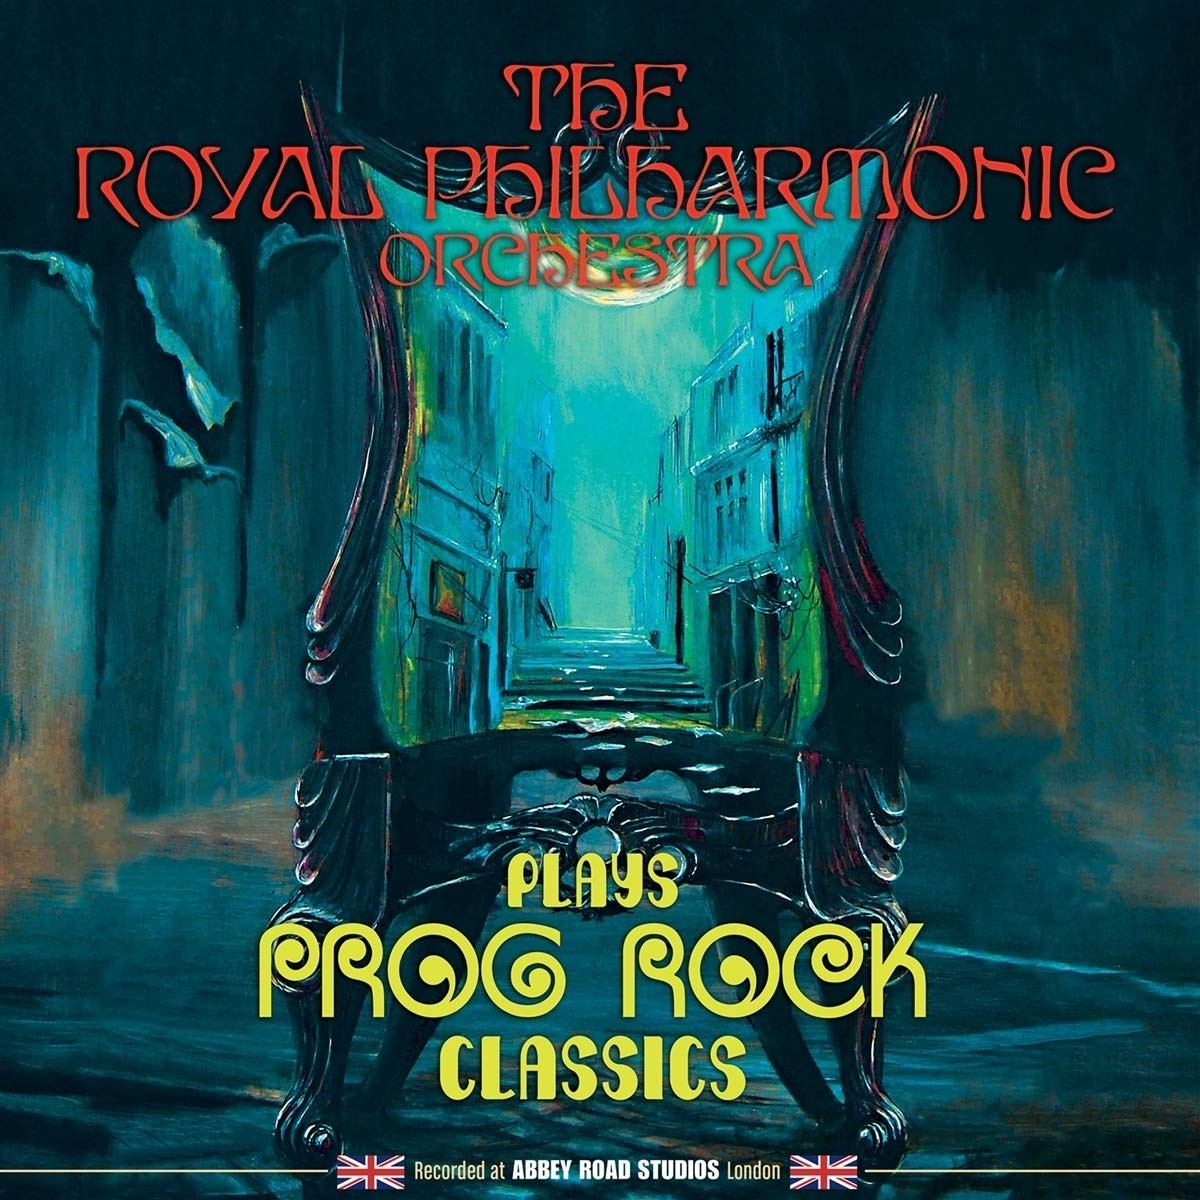 Royal Philharmonic Orchestra - RPO Plays Prog Rock Classics LP